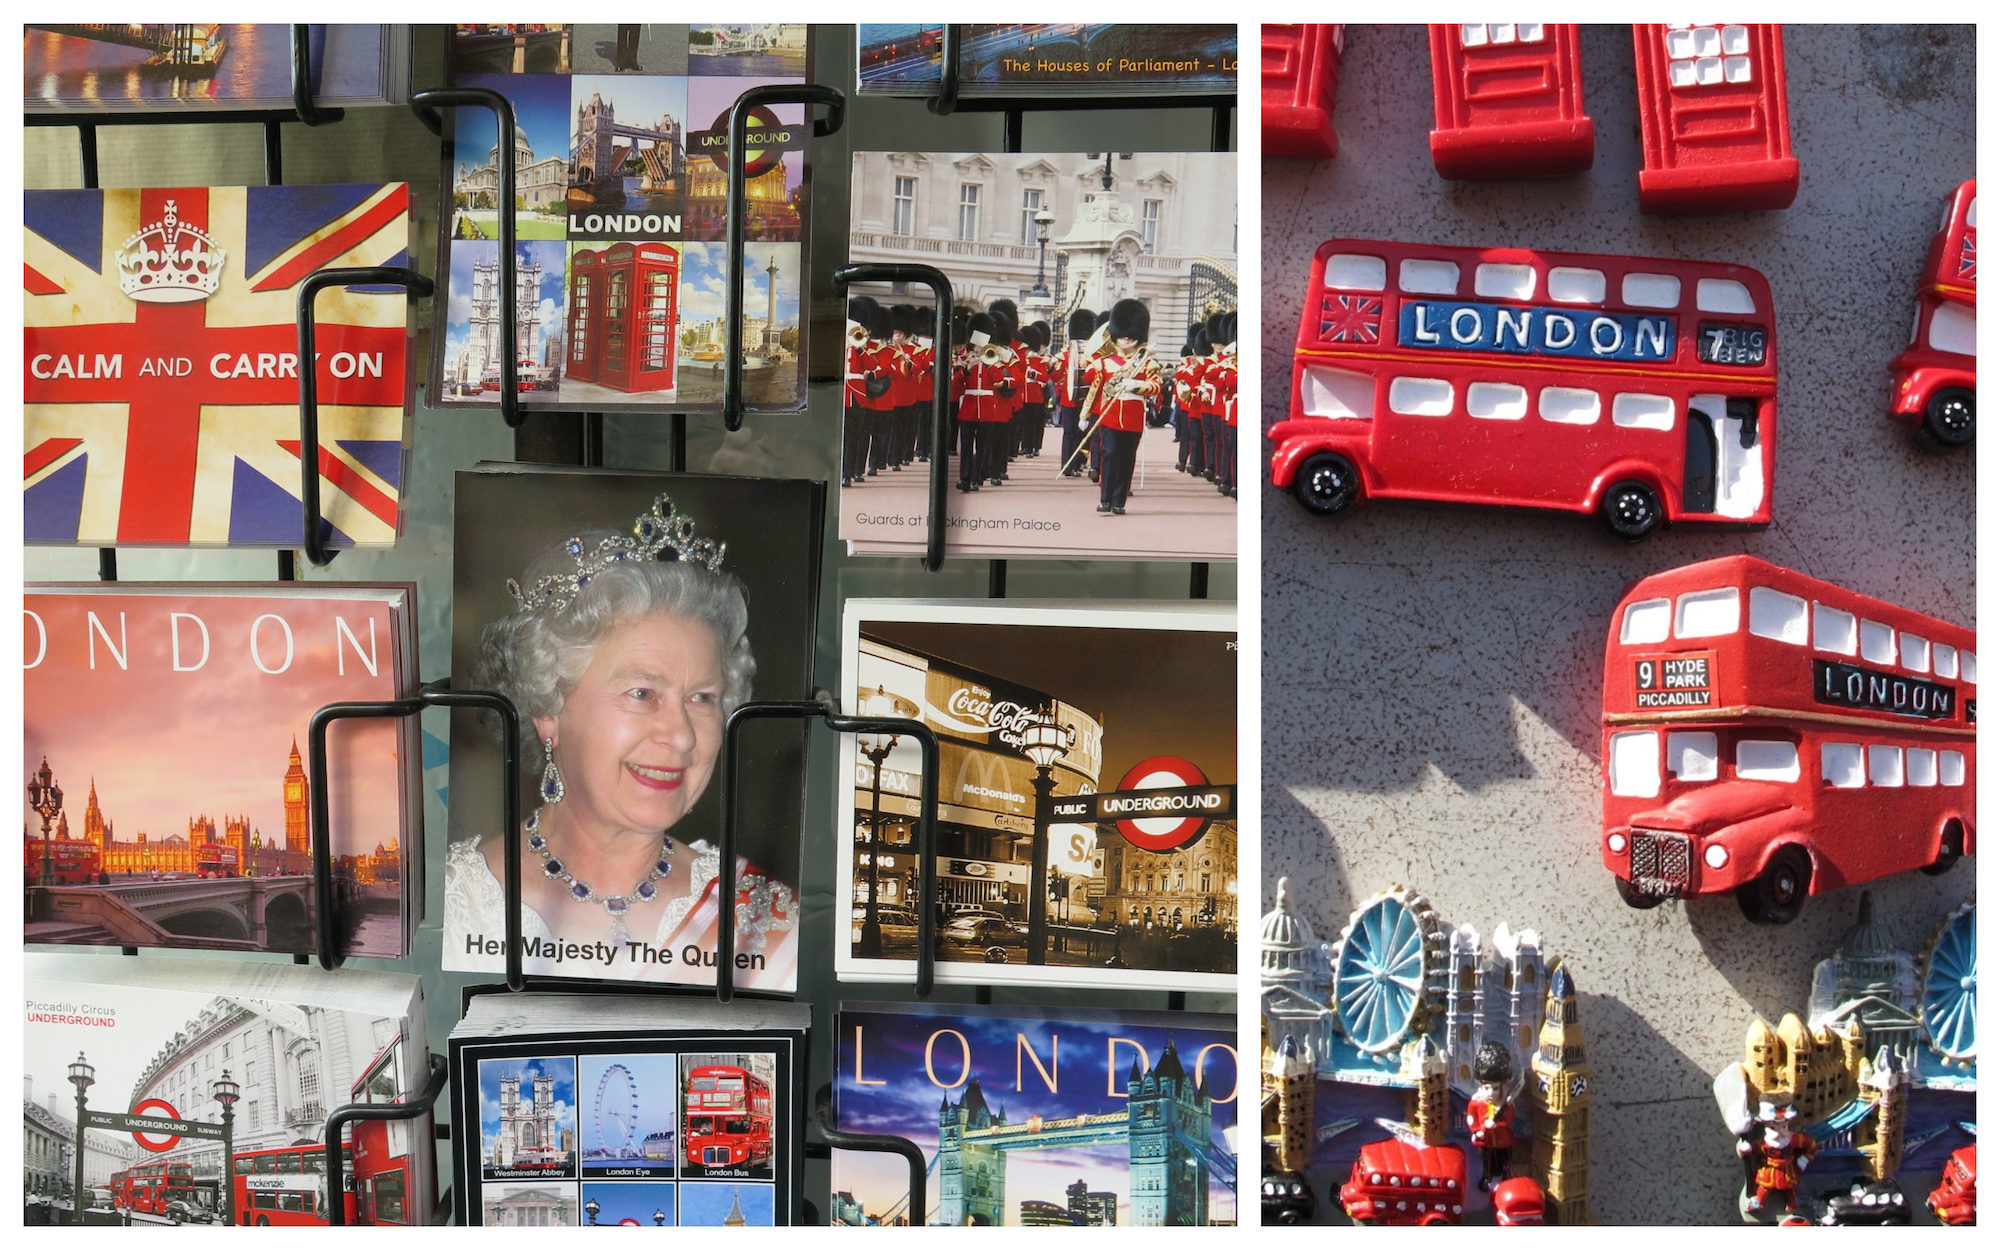 A London souvenir stall with postcards of the Royal Family and red double-decker bus magnets.